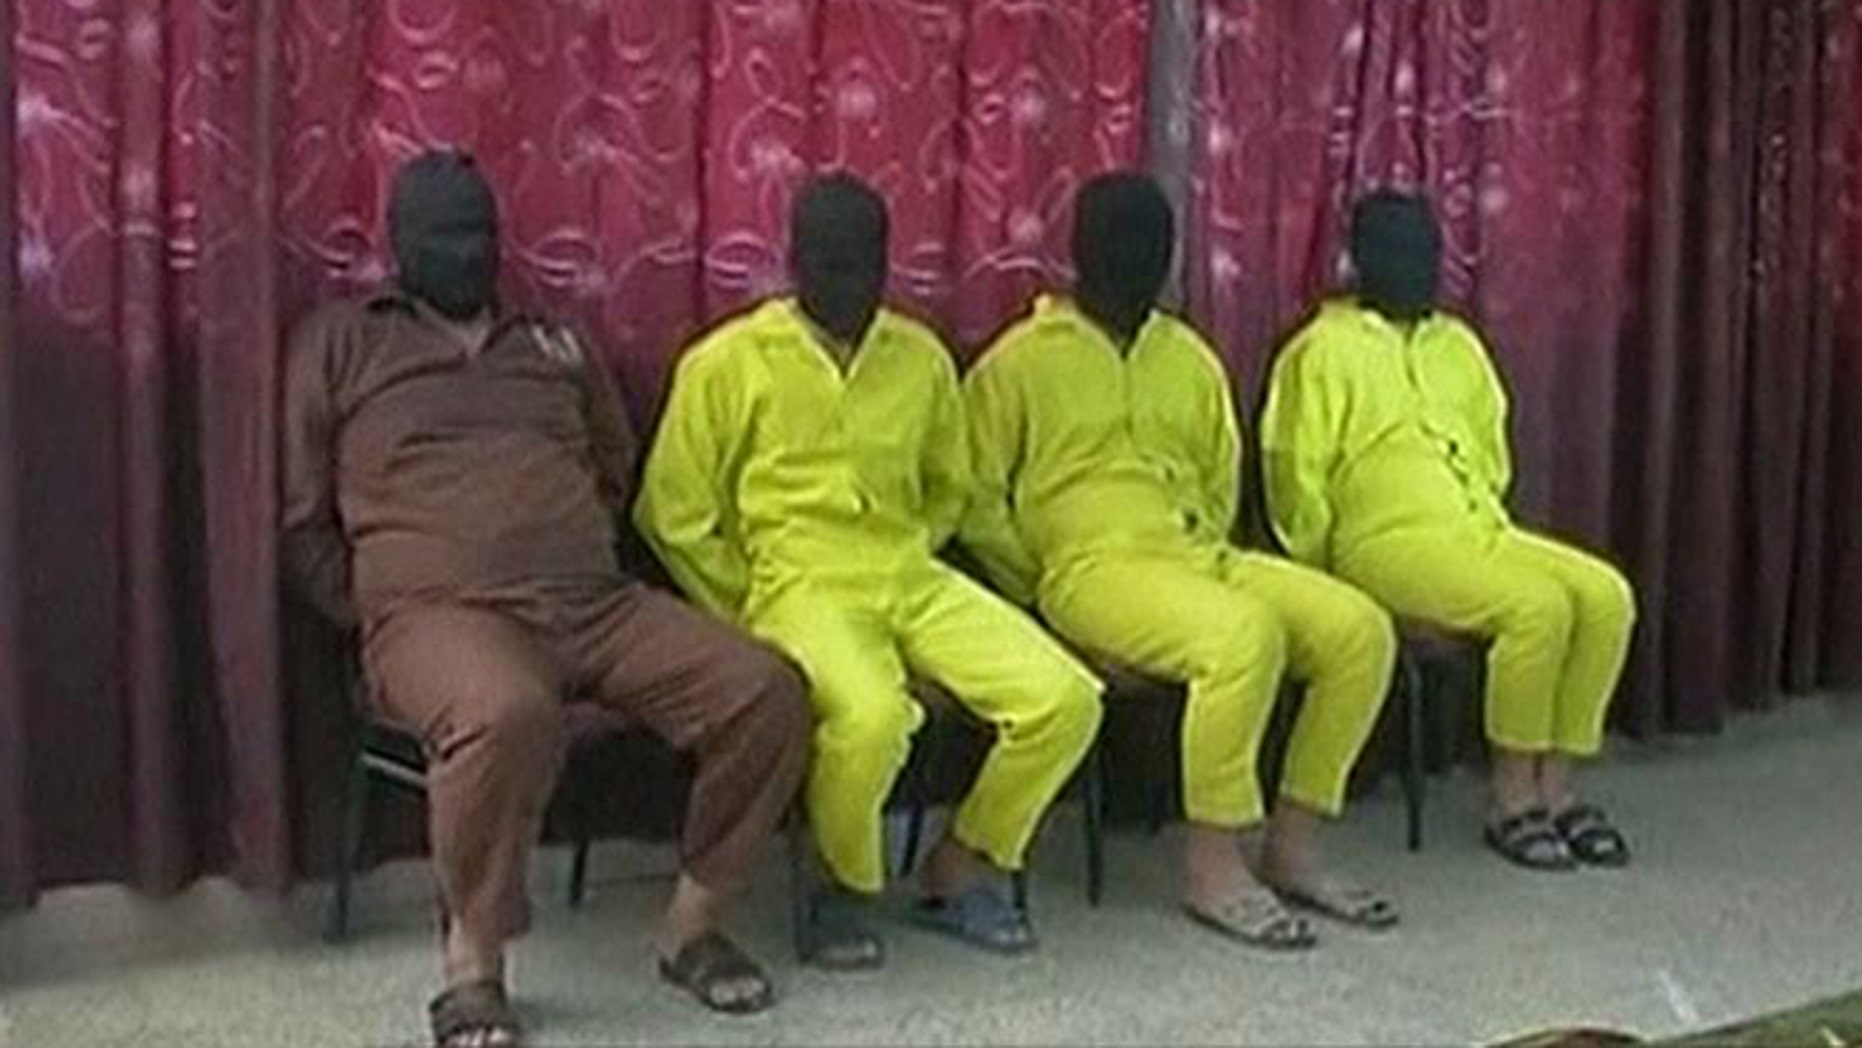 June 1, 2013: Four suspects believed to be involved in the chemical weapons plot are seen at a news conference in Iraq.